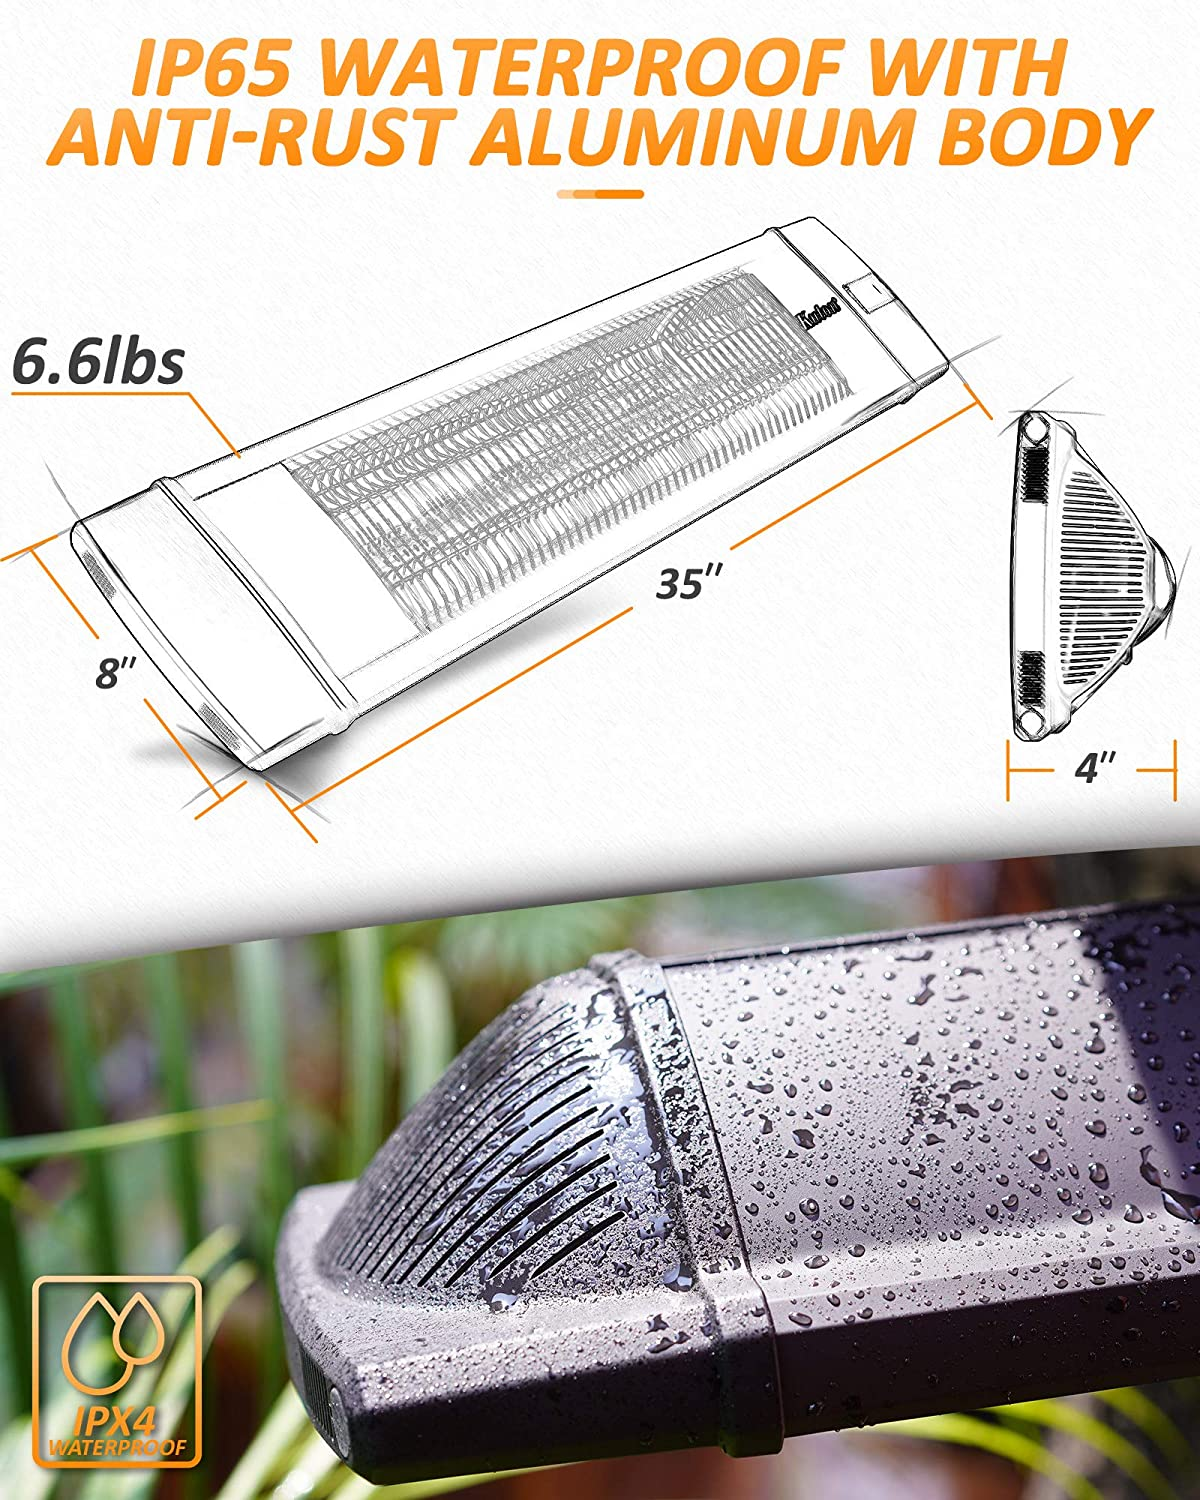 KUTON Electric Patio Heater, Outdoor Heater w/Remote, Wall Mounted Infrared Heater, IP65 Waterproof Outdoor Heater, 3 Power setting, Max. 5118BTU for Patio, Garage, Timer Setting for In/Outdoor, Black: Kitchen & Dining